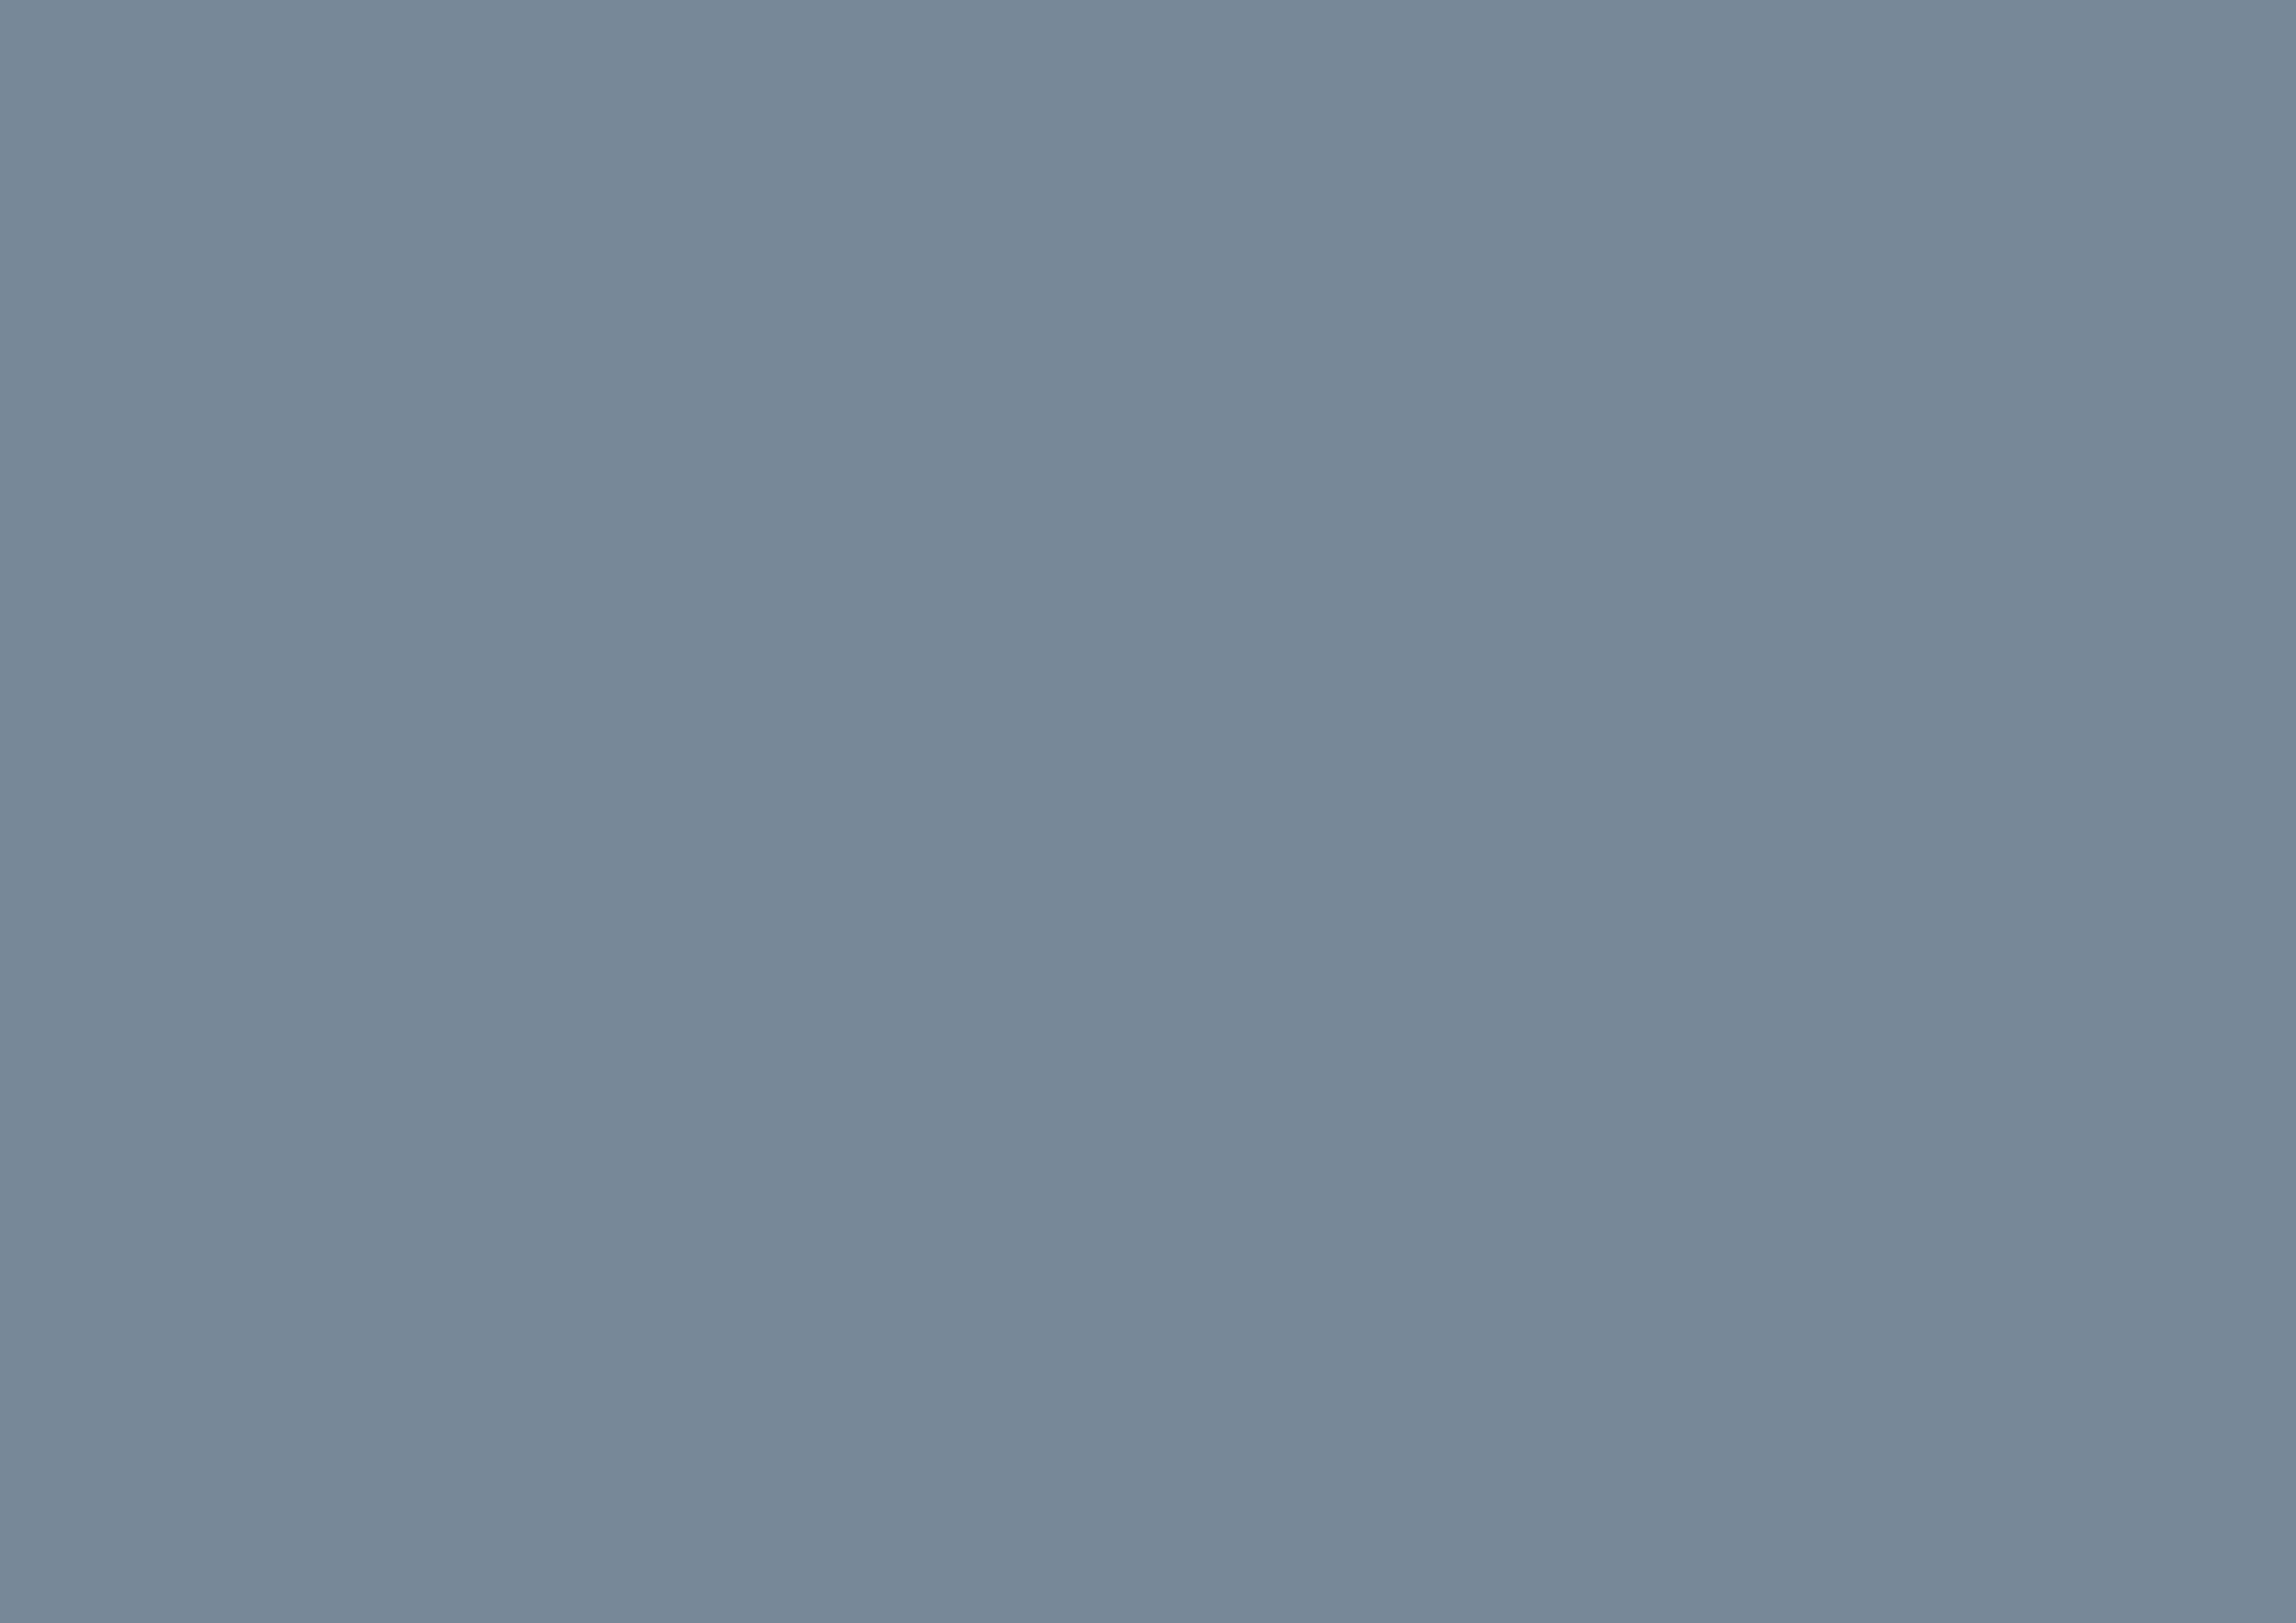 3508x2480 Light Slate Gray Solid Color Background